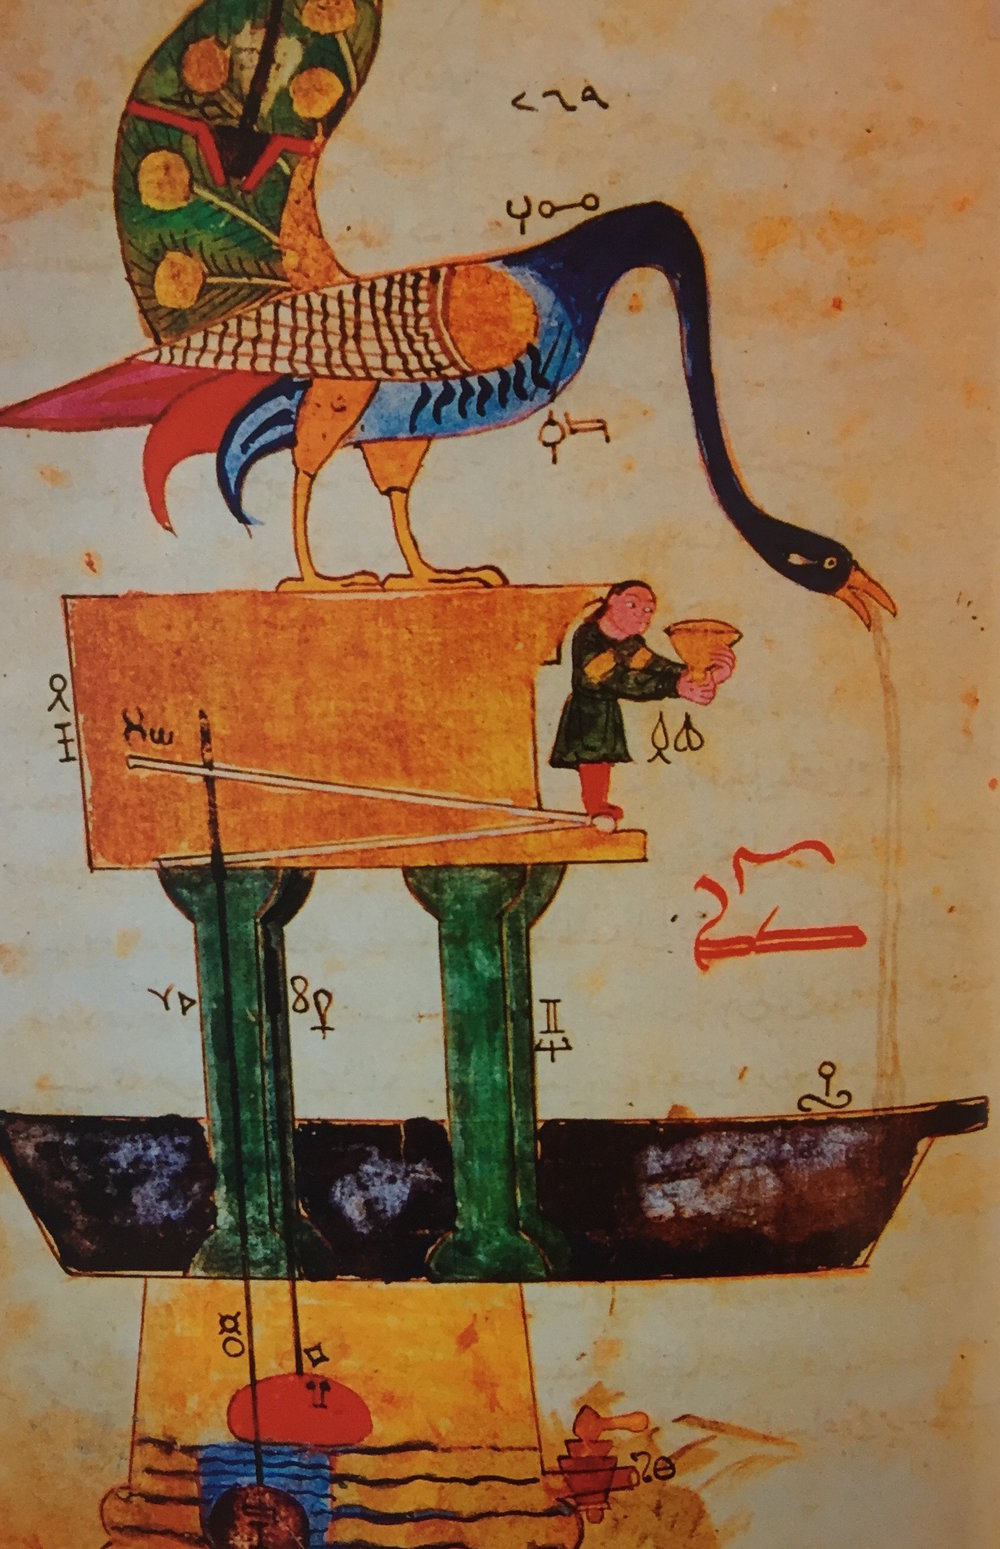 A medieval Islamic hand-washing machine. Courtesy of Nawal Nasrallah.